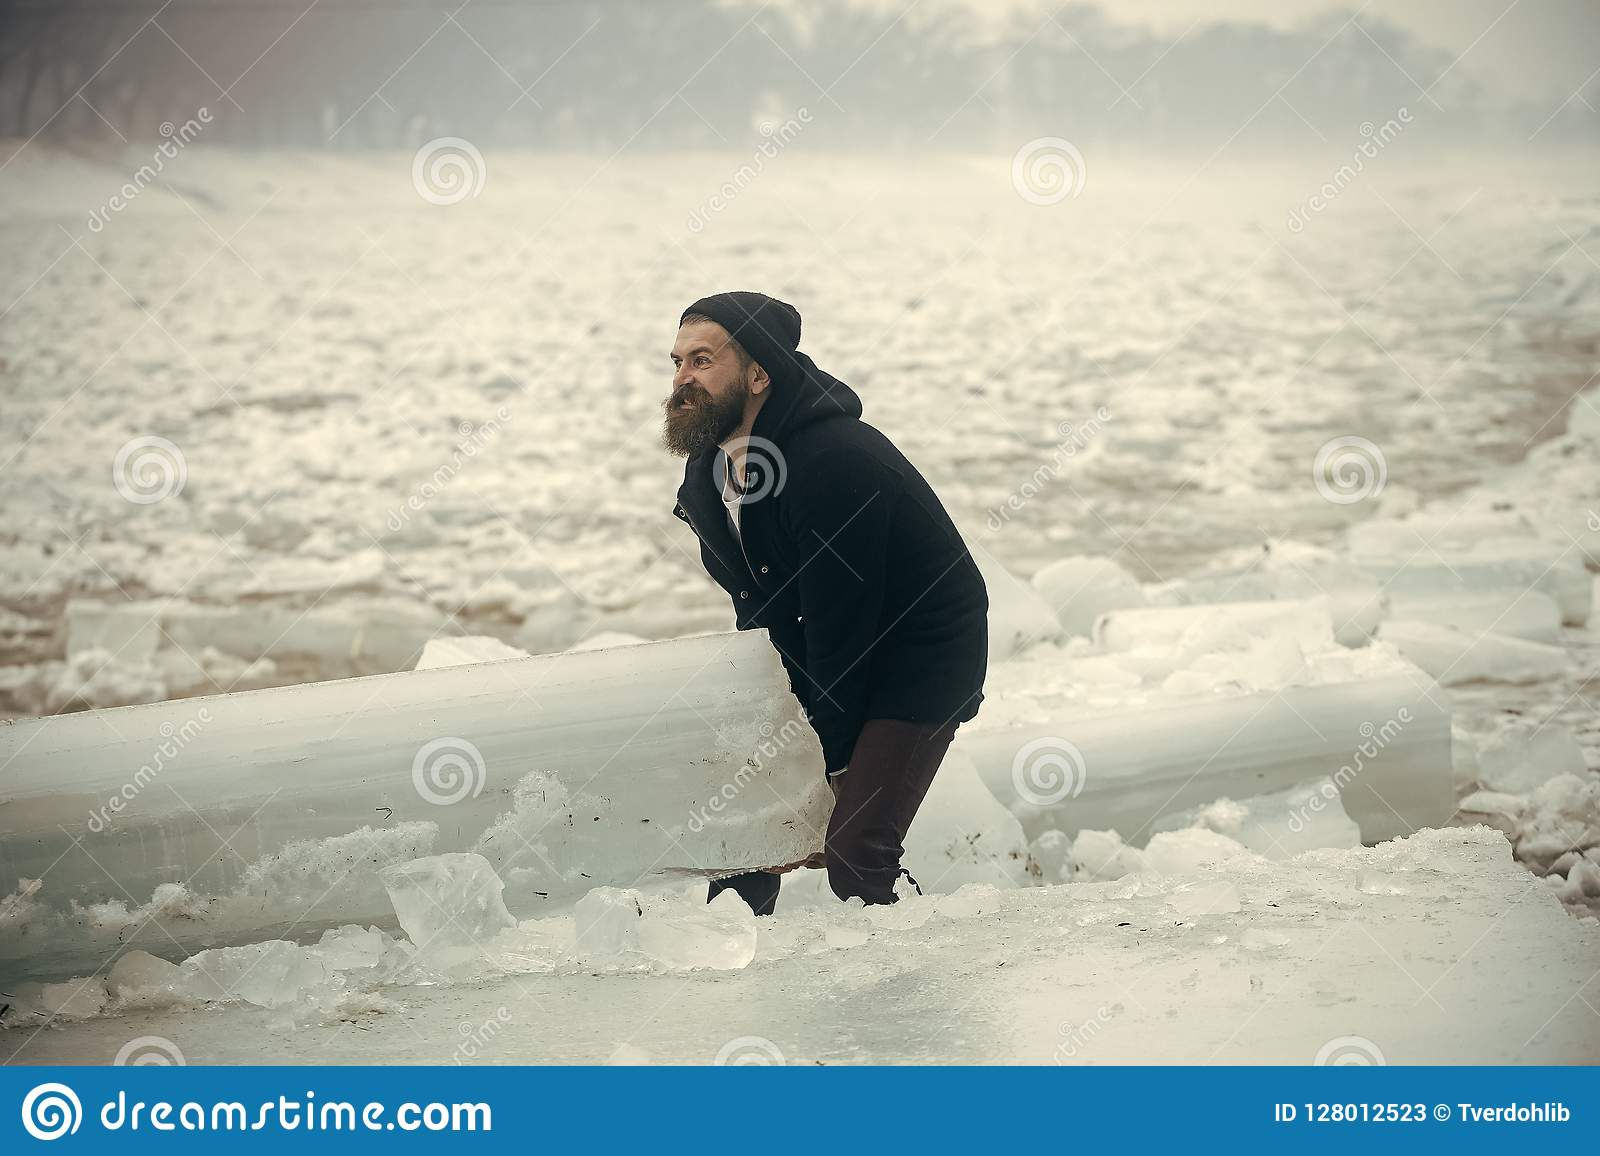 Power And Strength Of Man With Frozen Hummock. Stock Image - Image ...